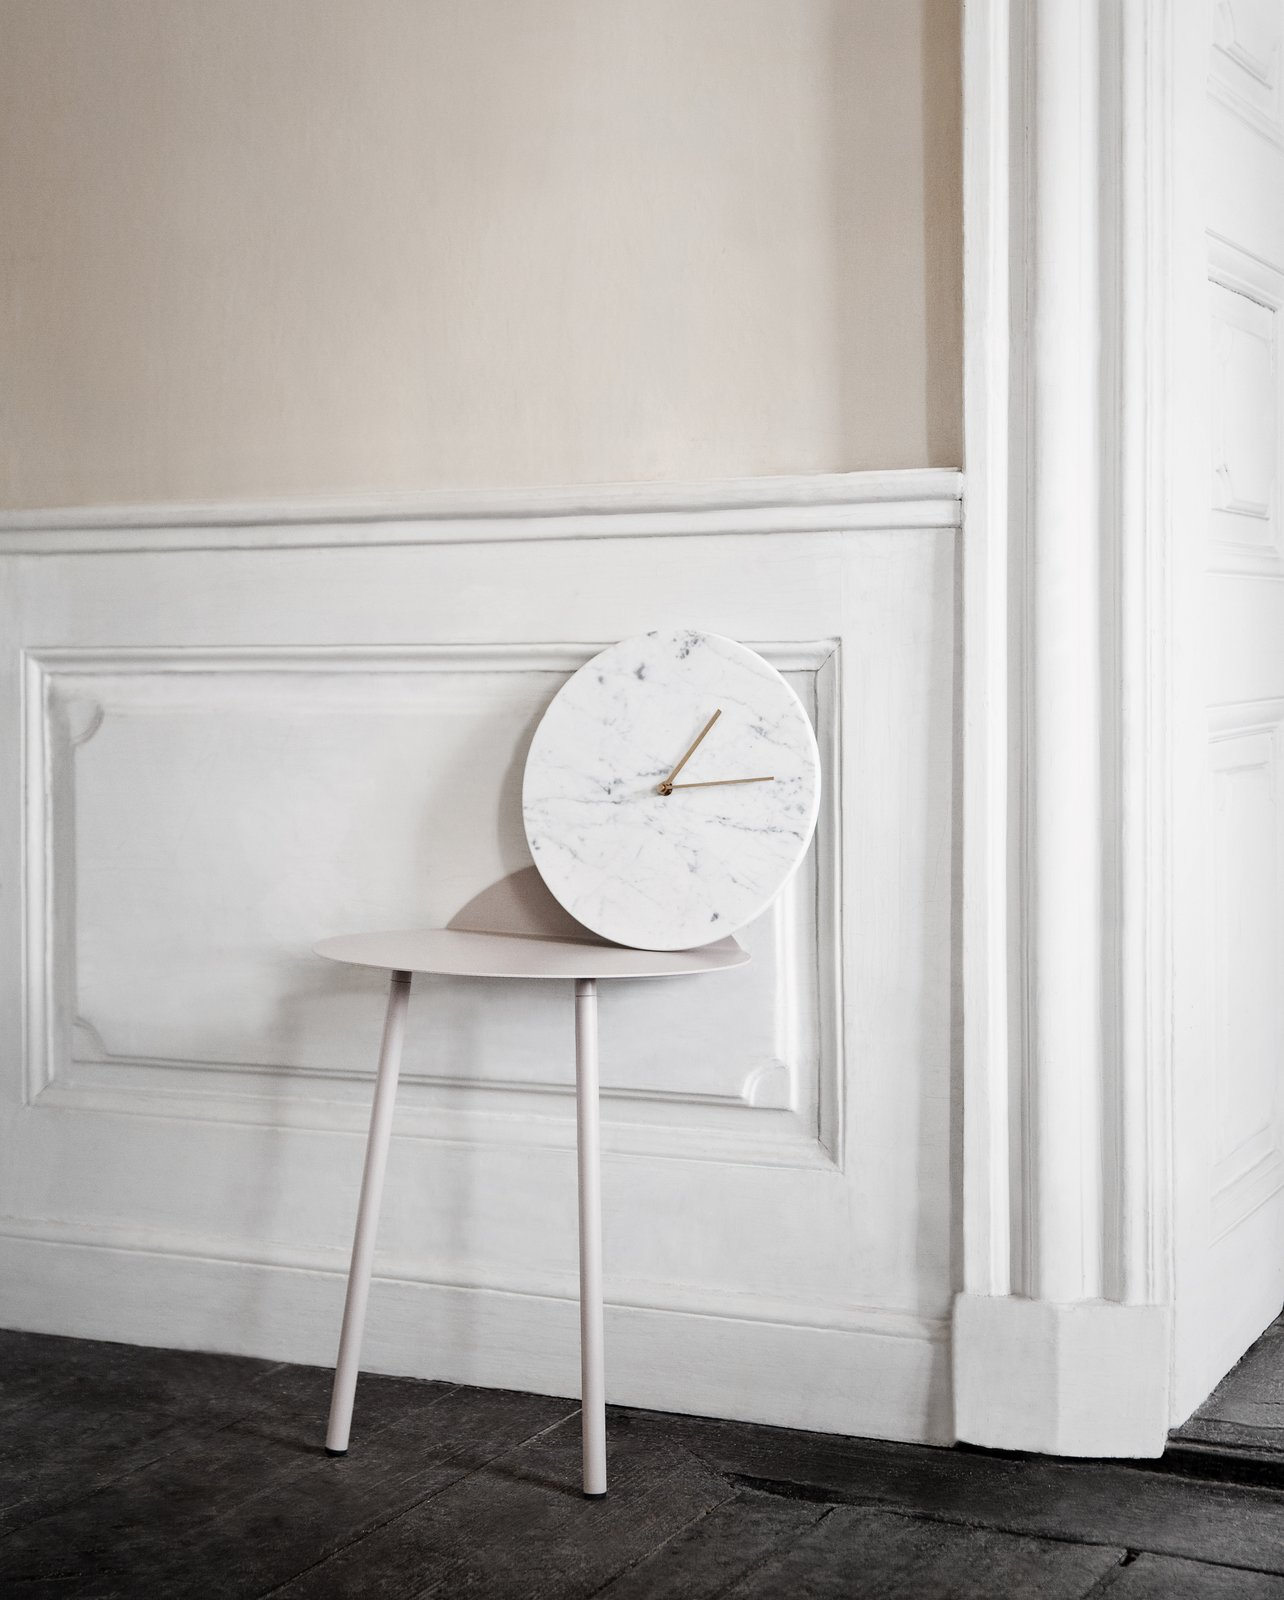 Photo 1 of 1 in Marble Wall Clock